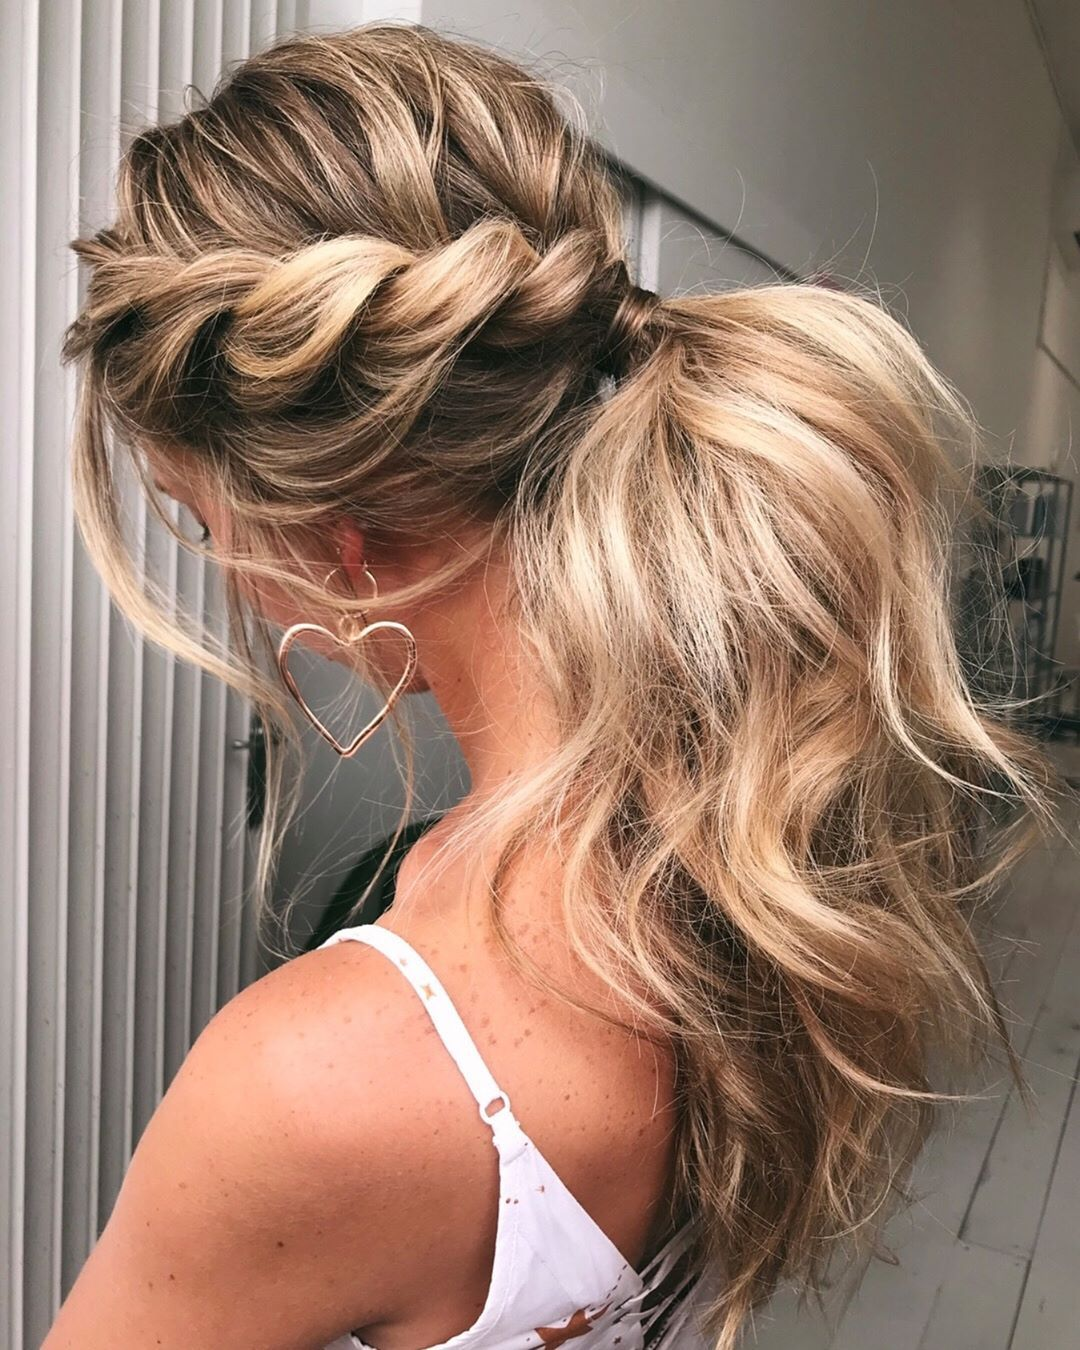 Waiting For An Invite To An Event So I Can Get My Hair Styled Like This Vivalablonde Hairdo For Long Hair Ponytail Hairstyles Long Hair Styles